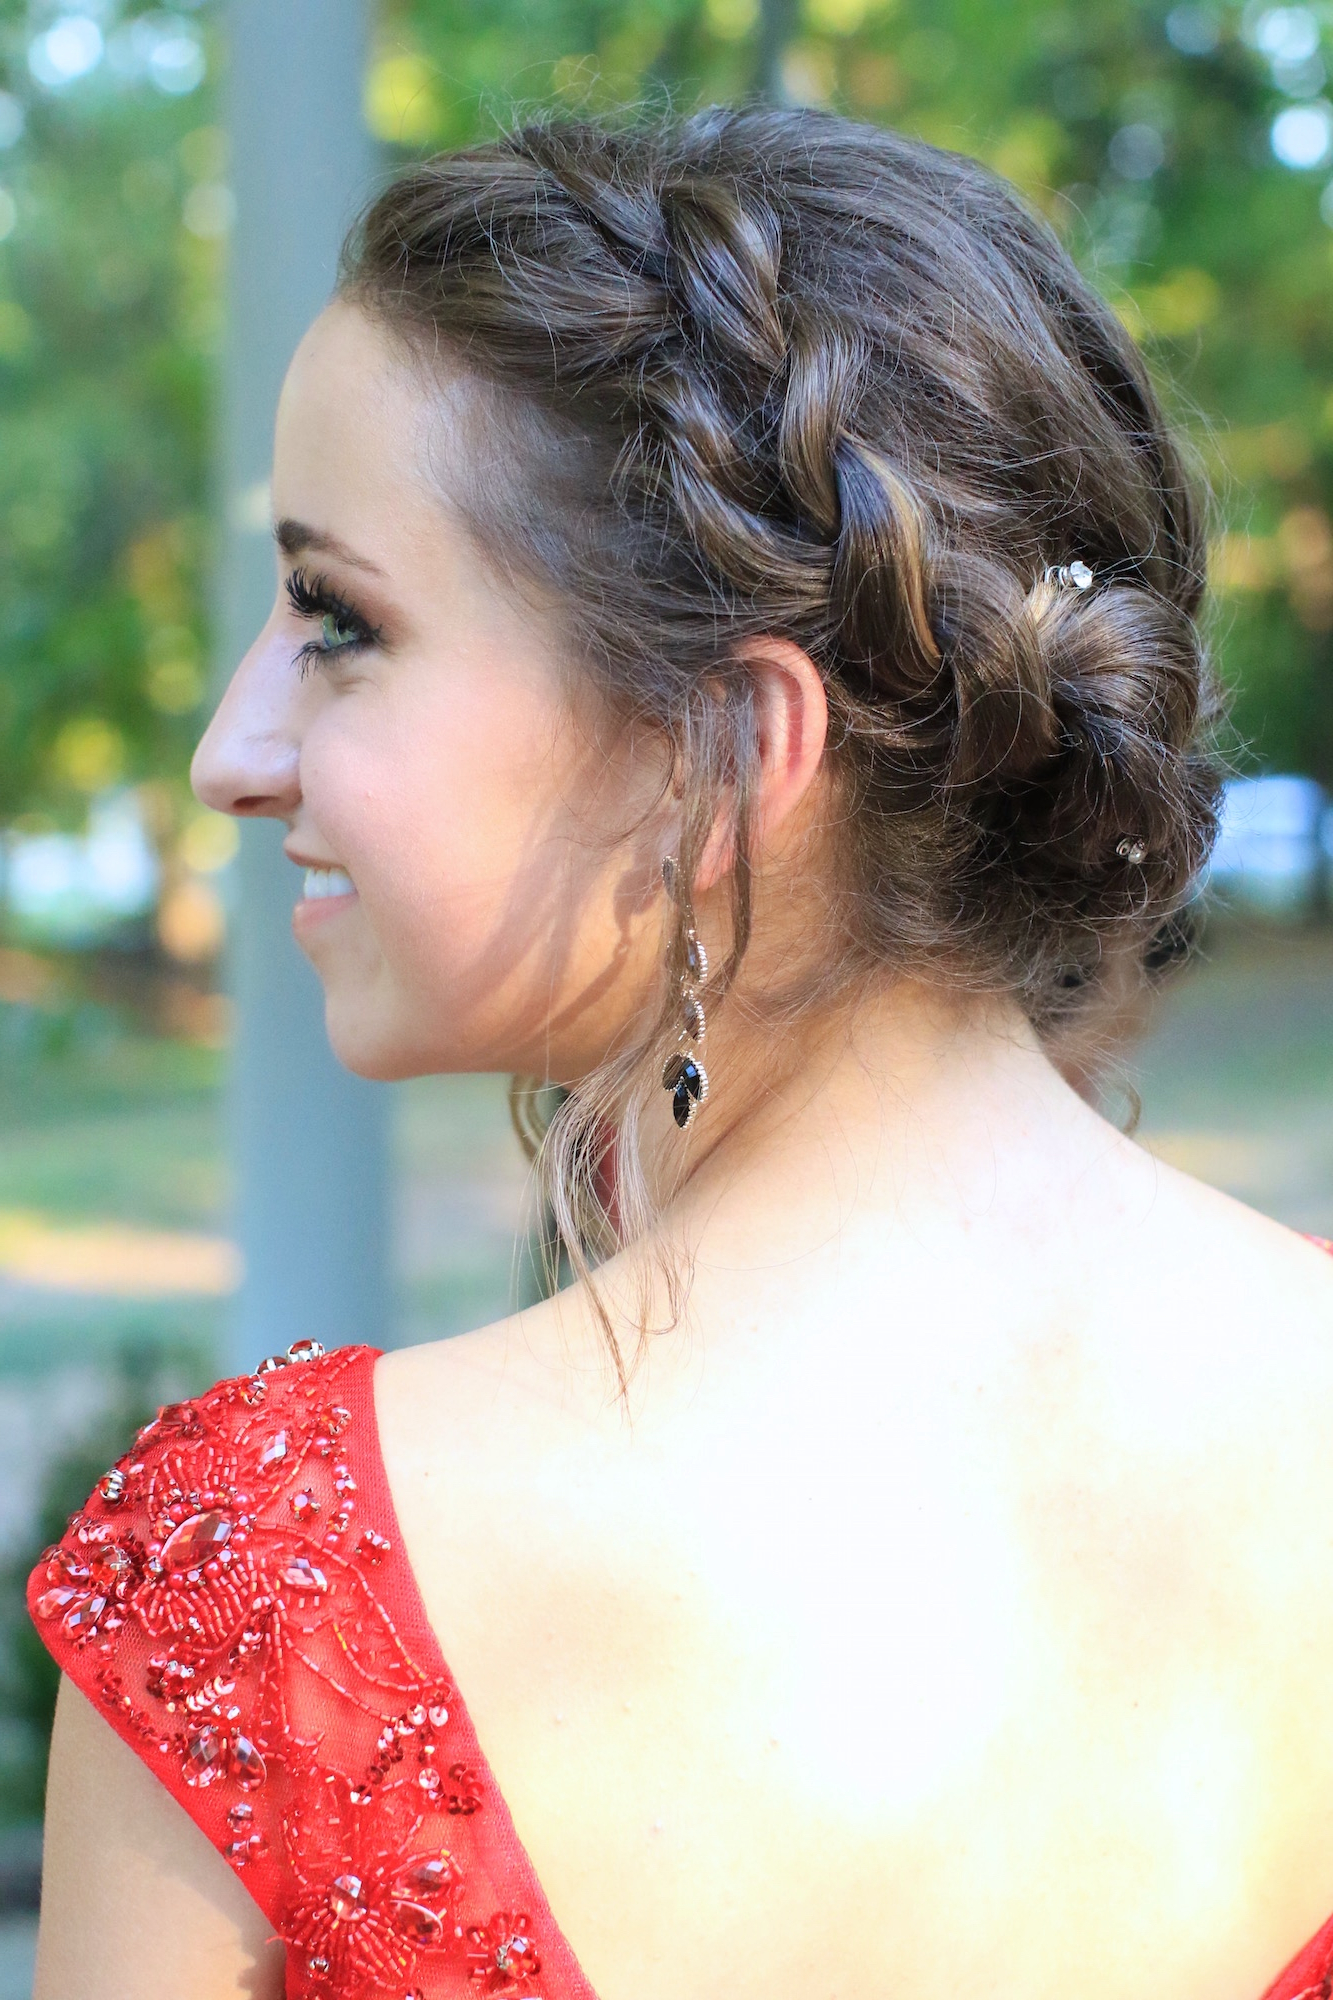 Rope Twist Updo   Homecoming Hairstyles   Cute Girls Hairstyles In Homecoming Short Hair Styles (View 17 of 25)